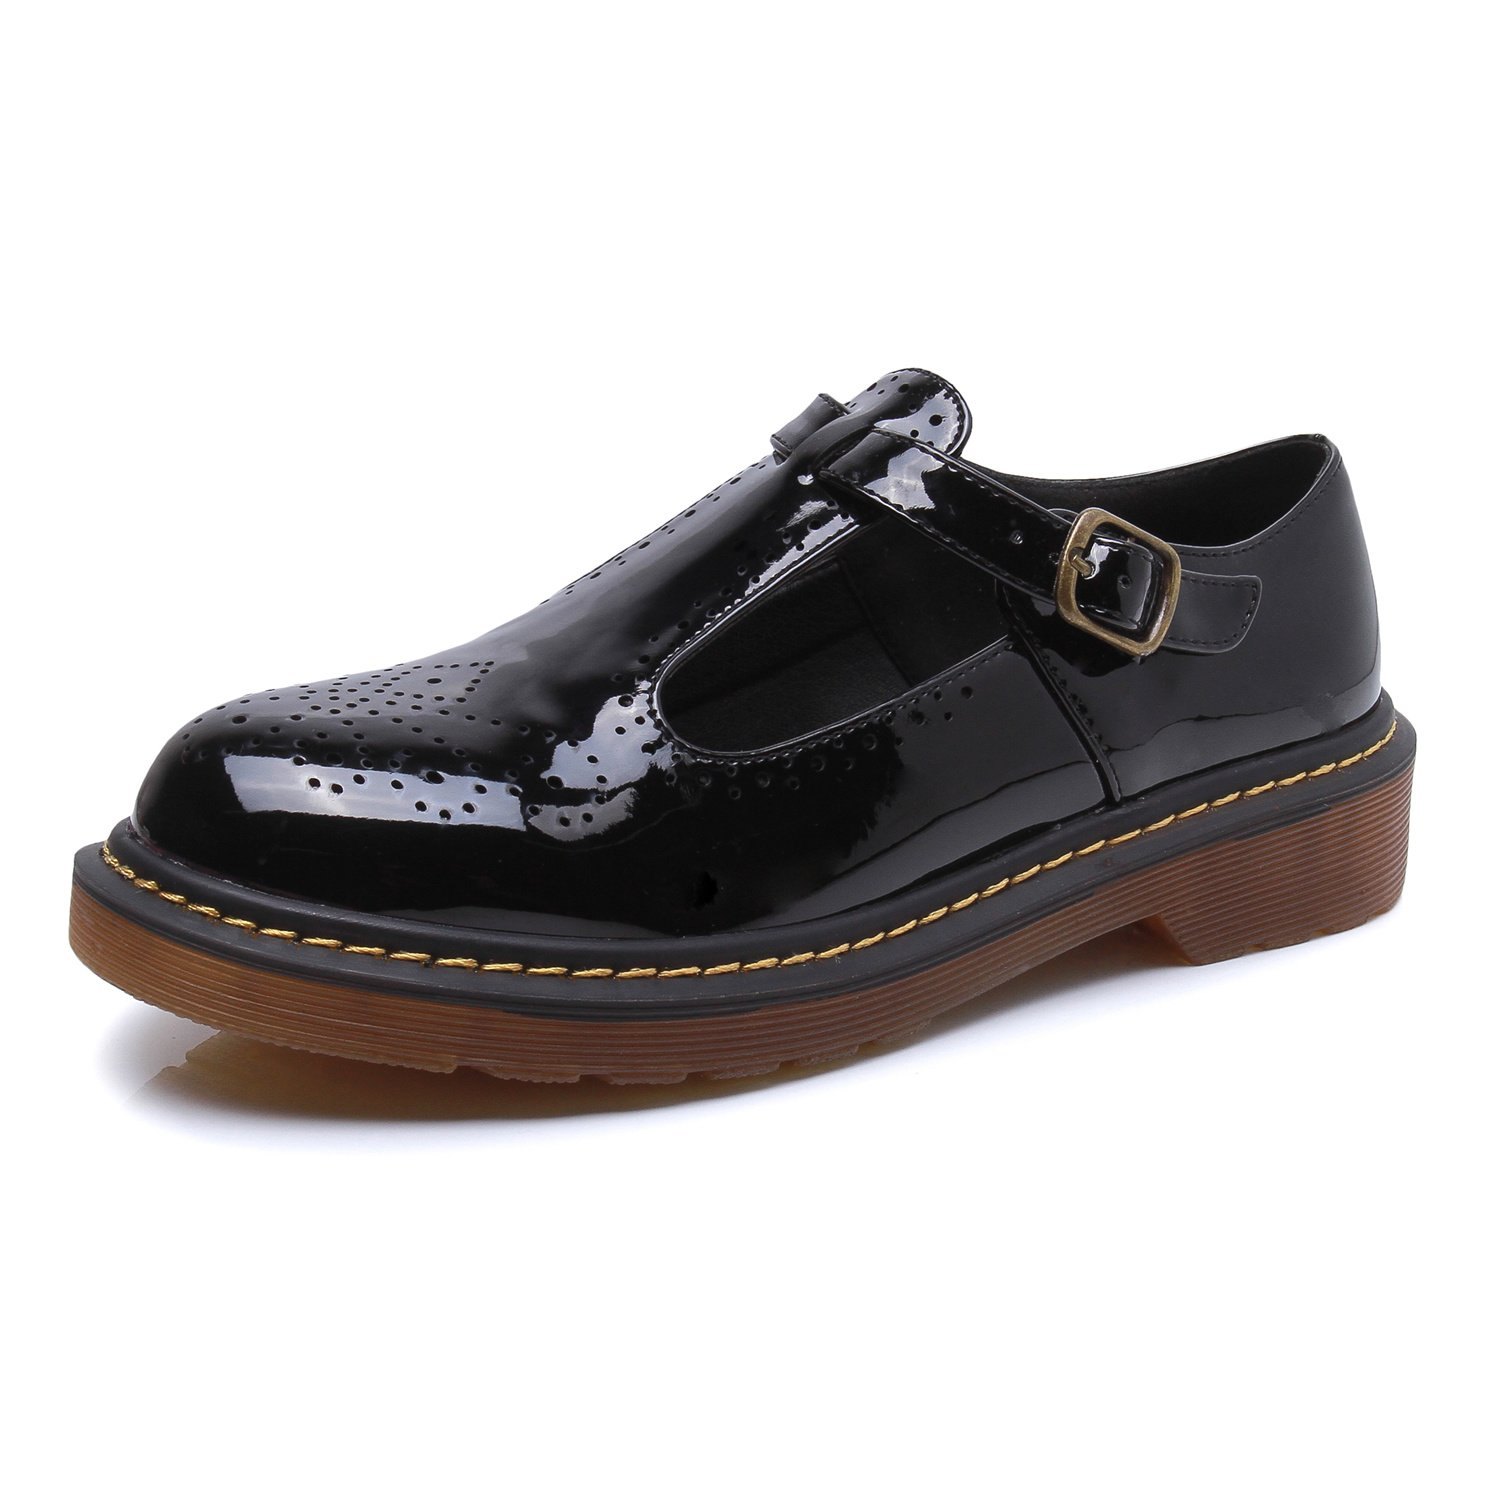 Smilun Chaussures Femme Mary Boucle Jane Boucle Chaussures Basses Femme Classic Bout Rond Noir 2eb70c4 - automatisms.space